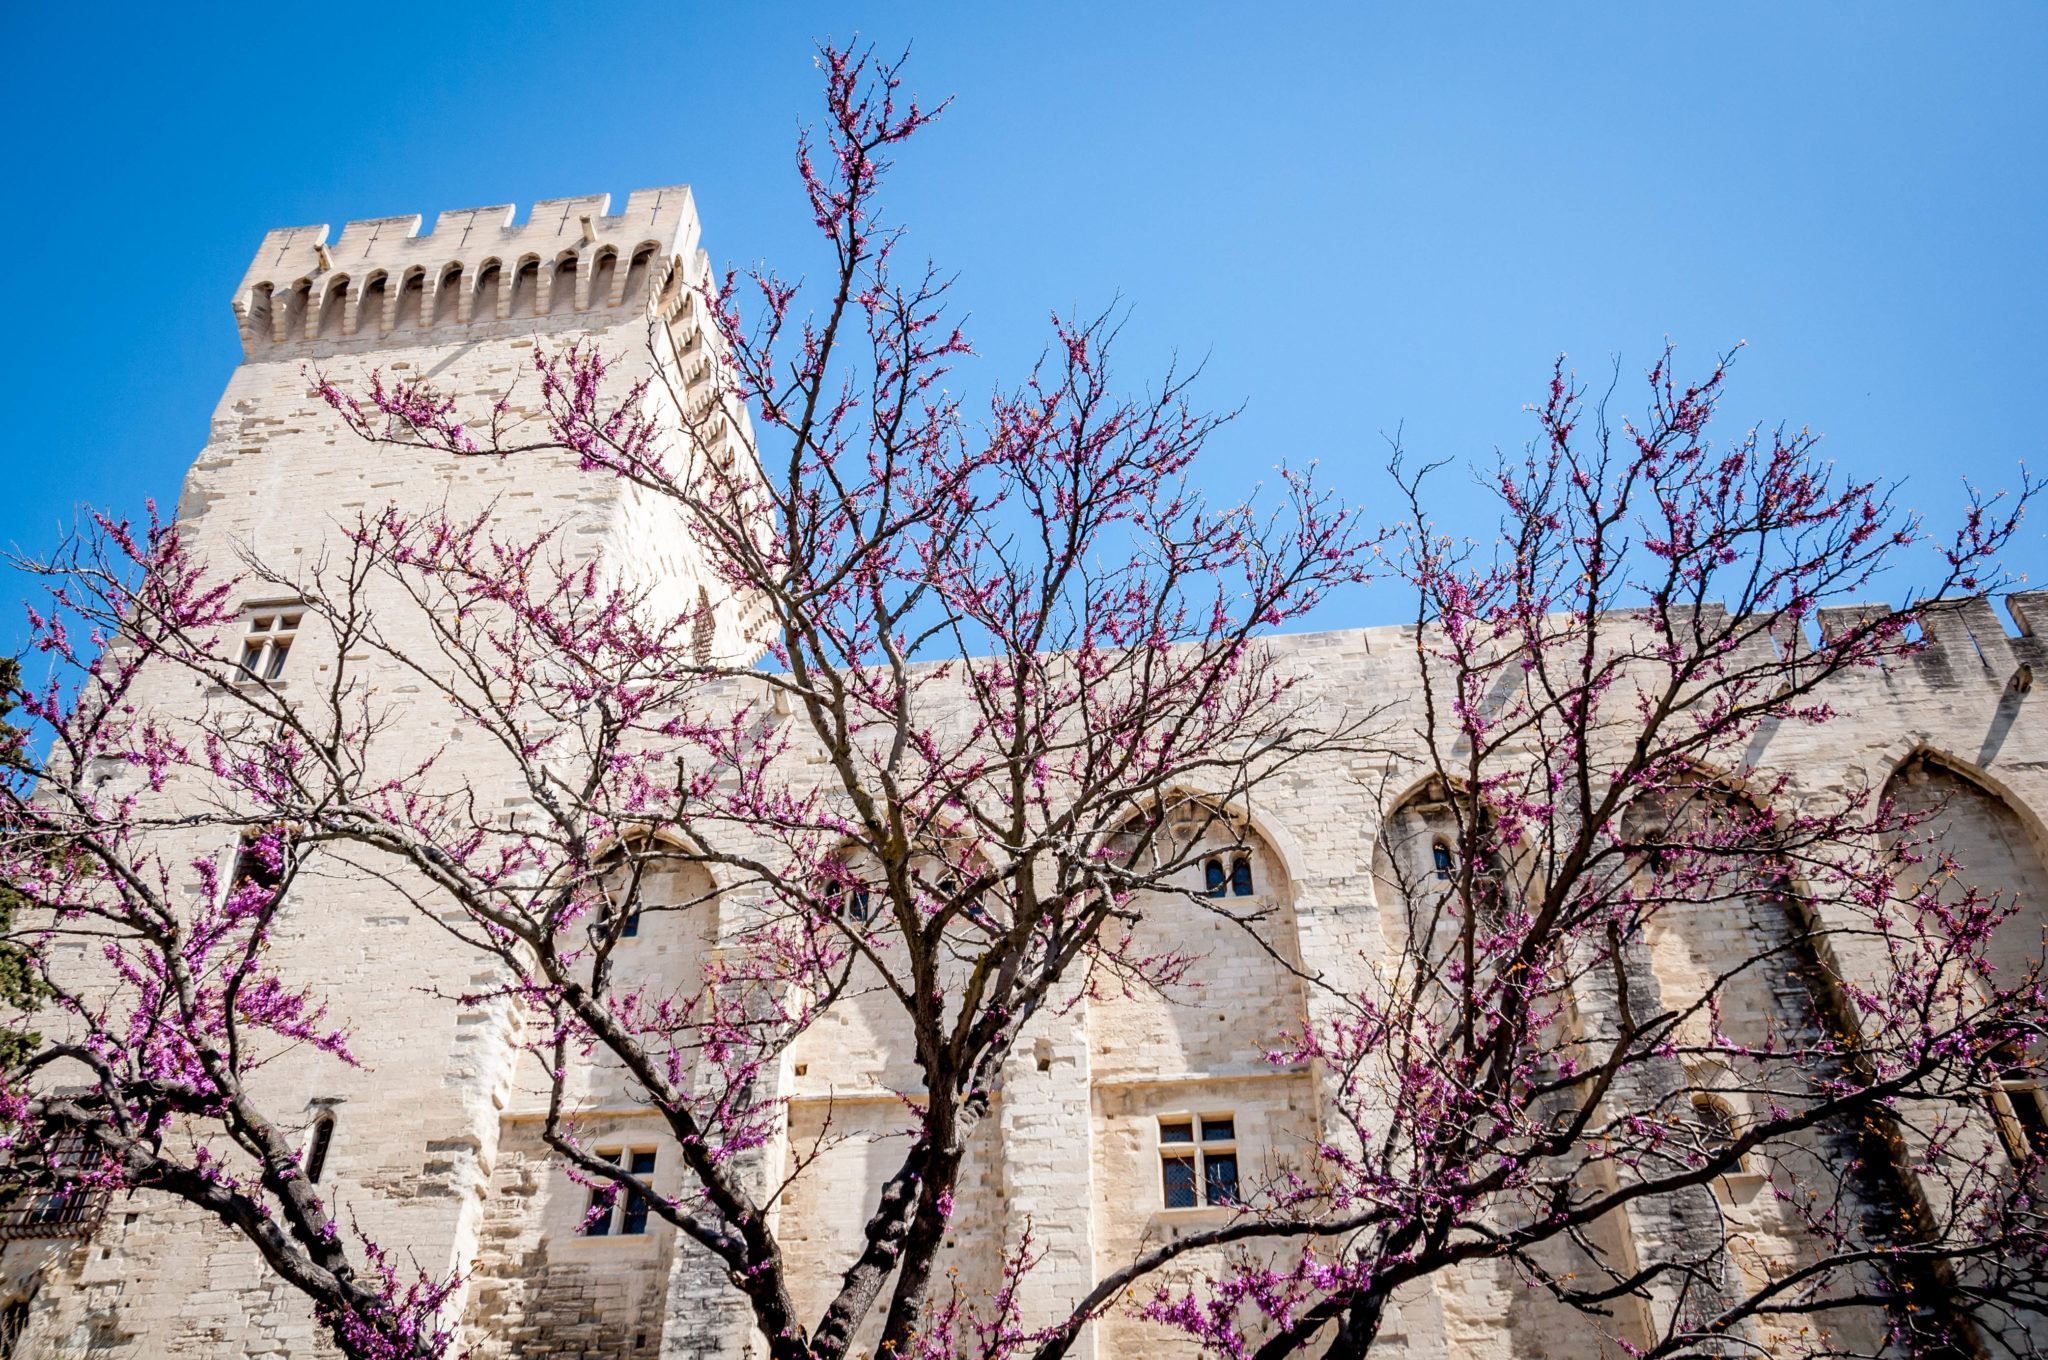 Cherry blossom tree in front of white building, the Palace of the Popes